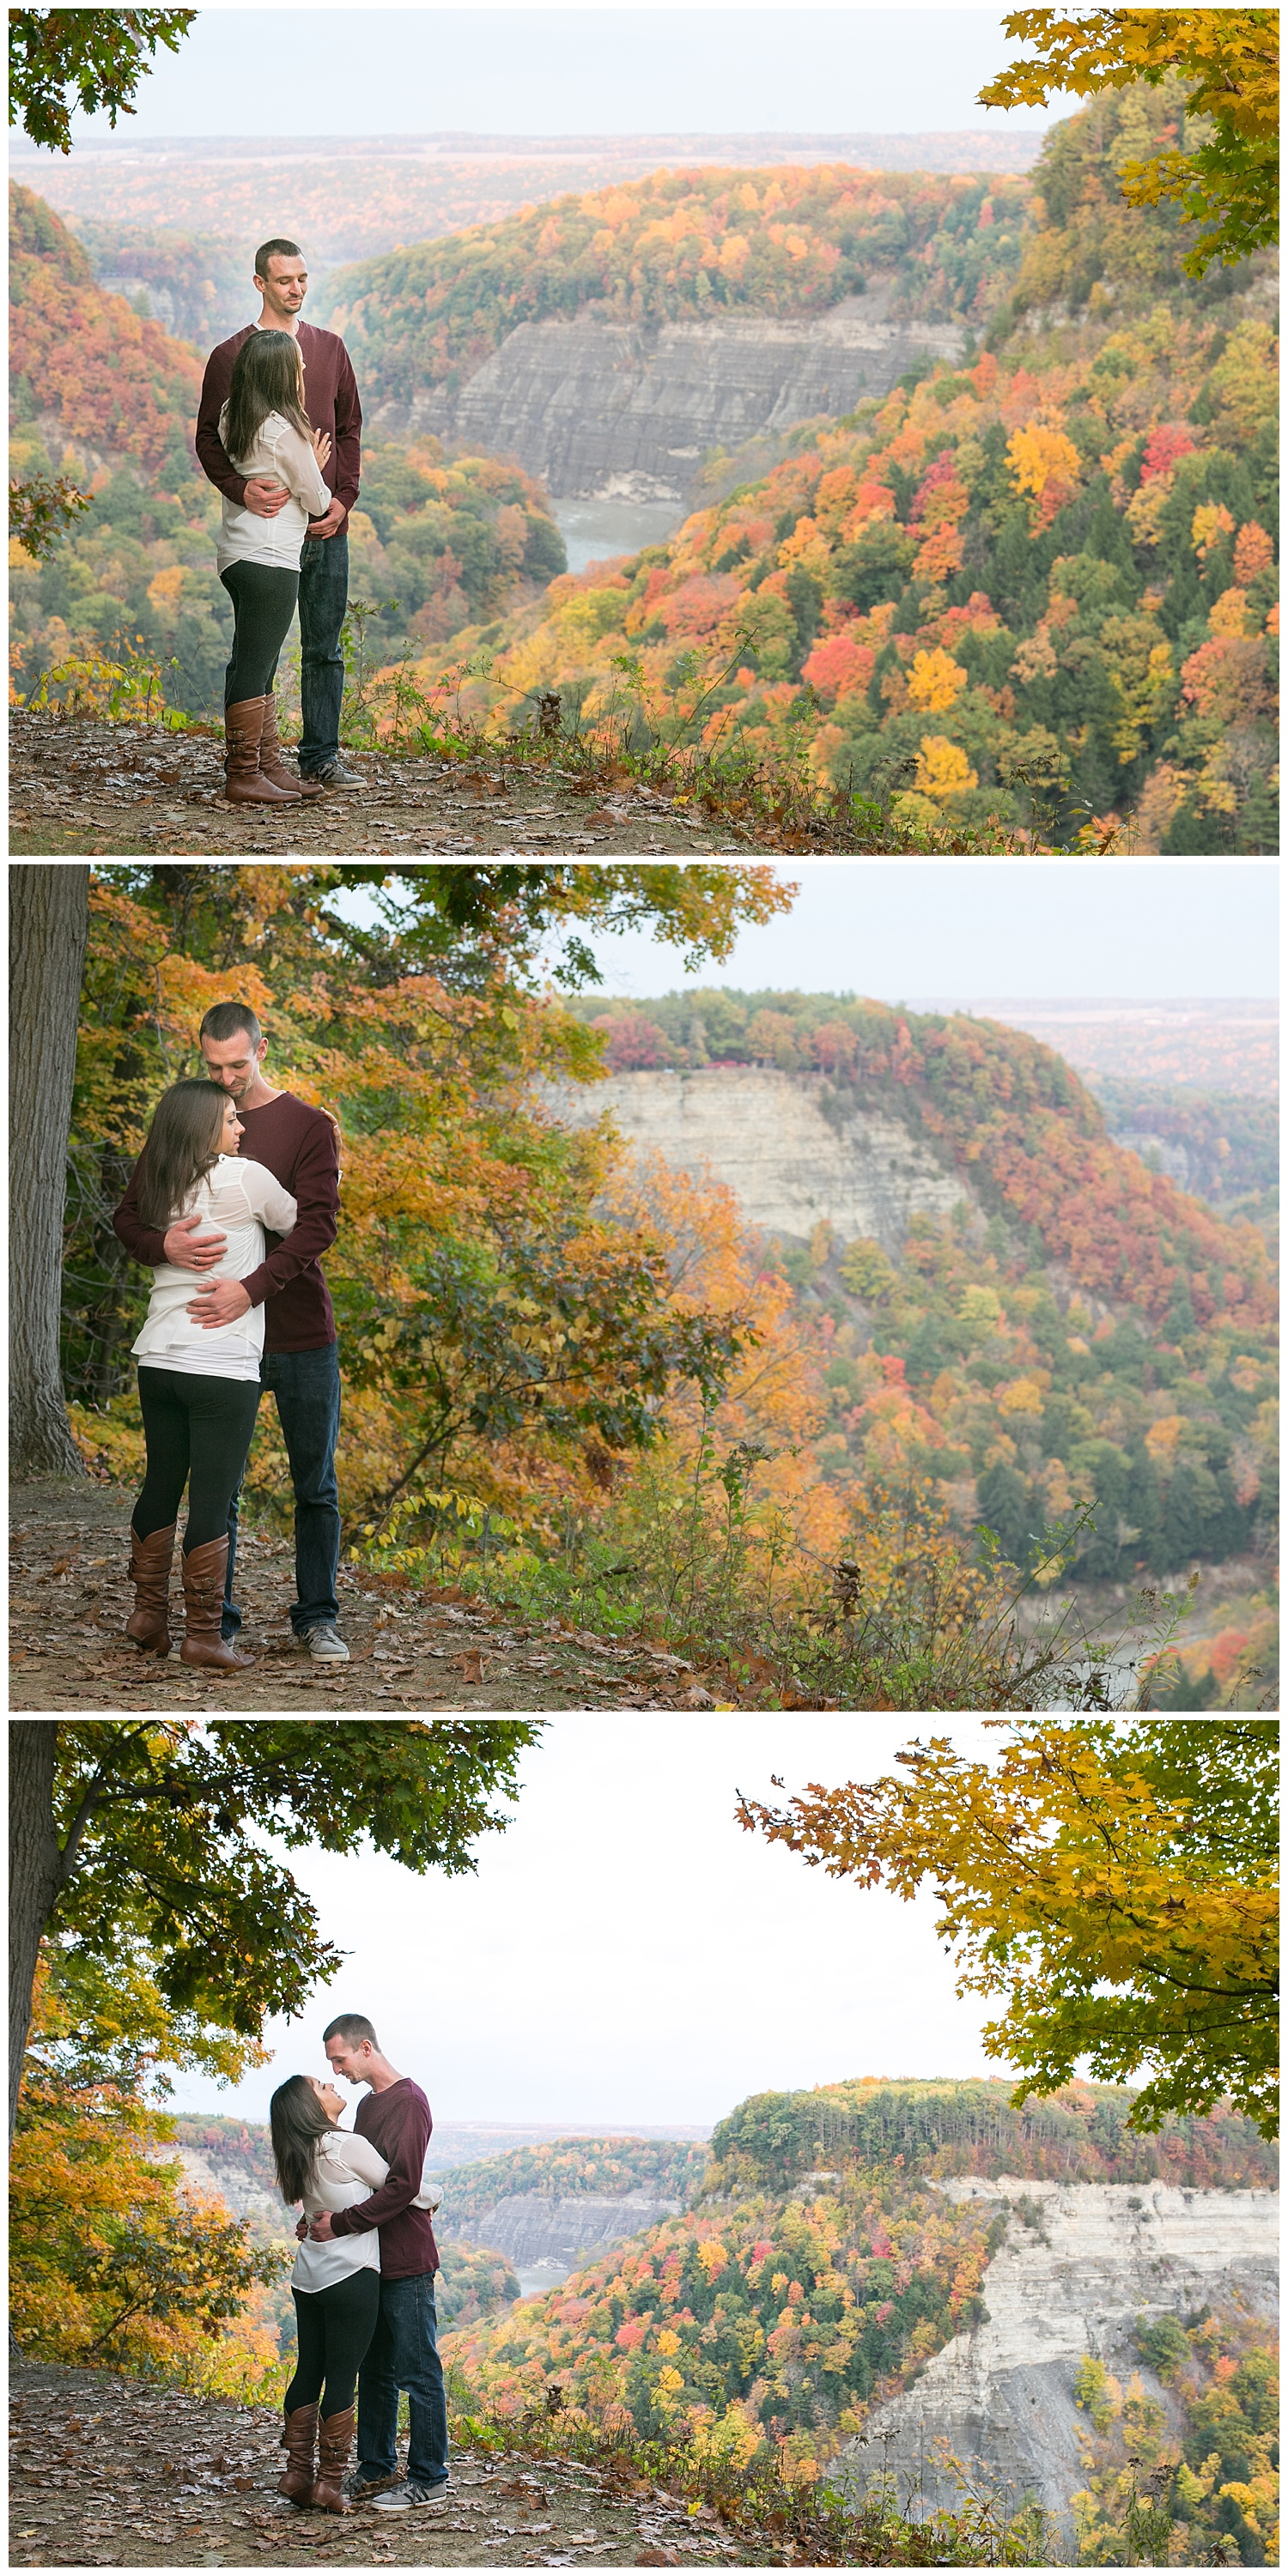 Gina and Tony - Engagement session - letchworth state park - lass and beau_0564.jpg